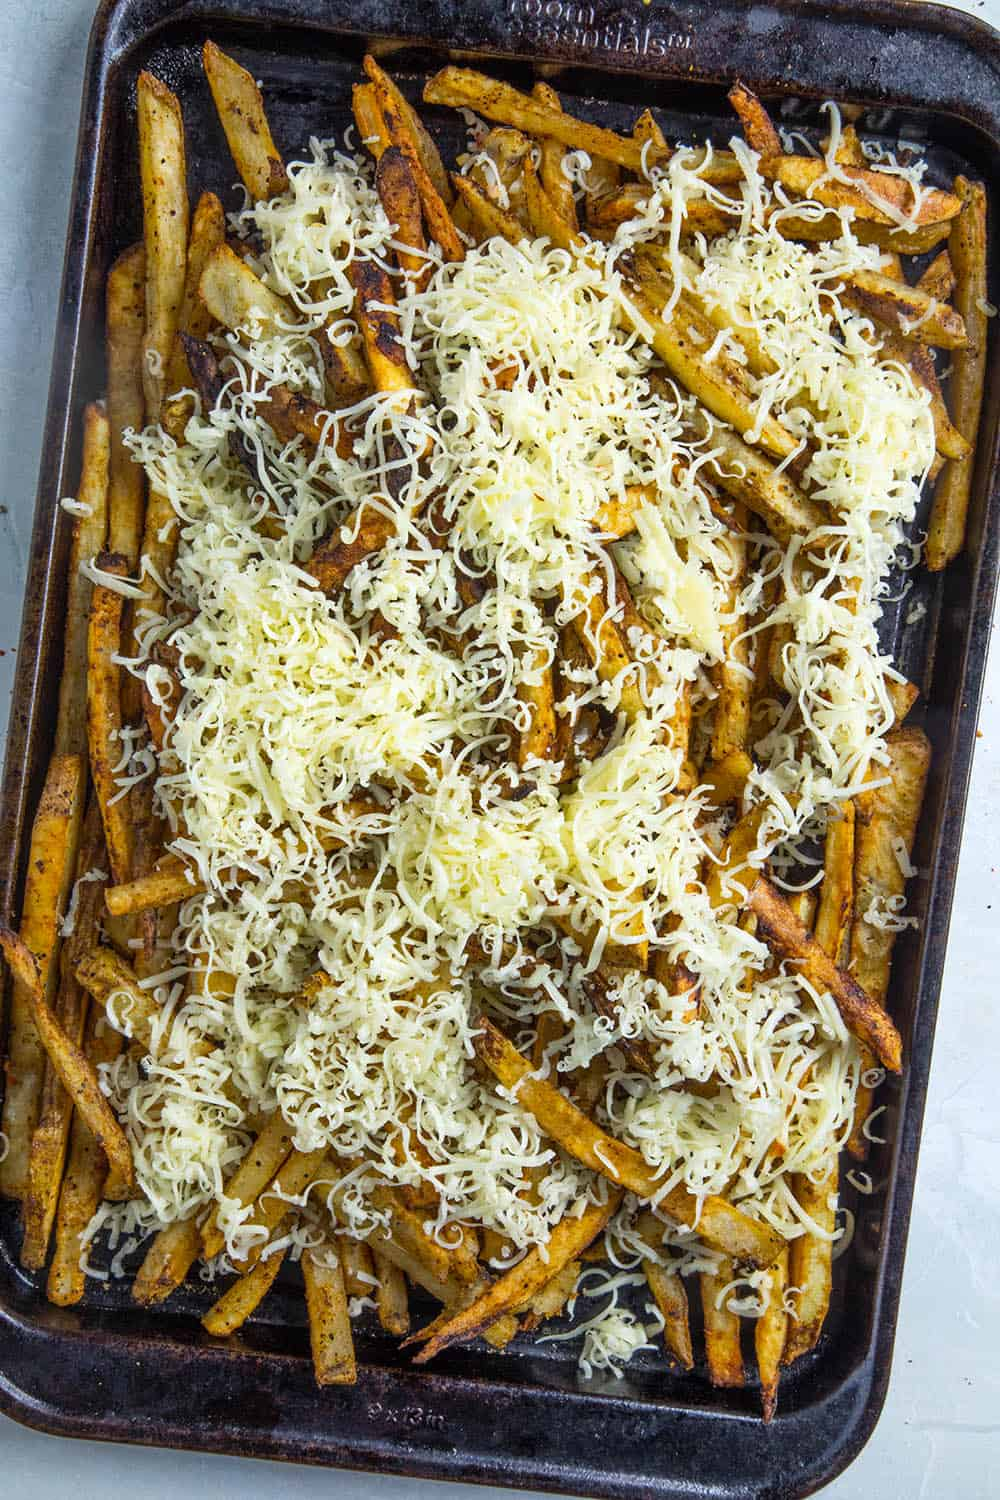 Topping the fries with cheese